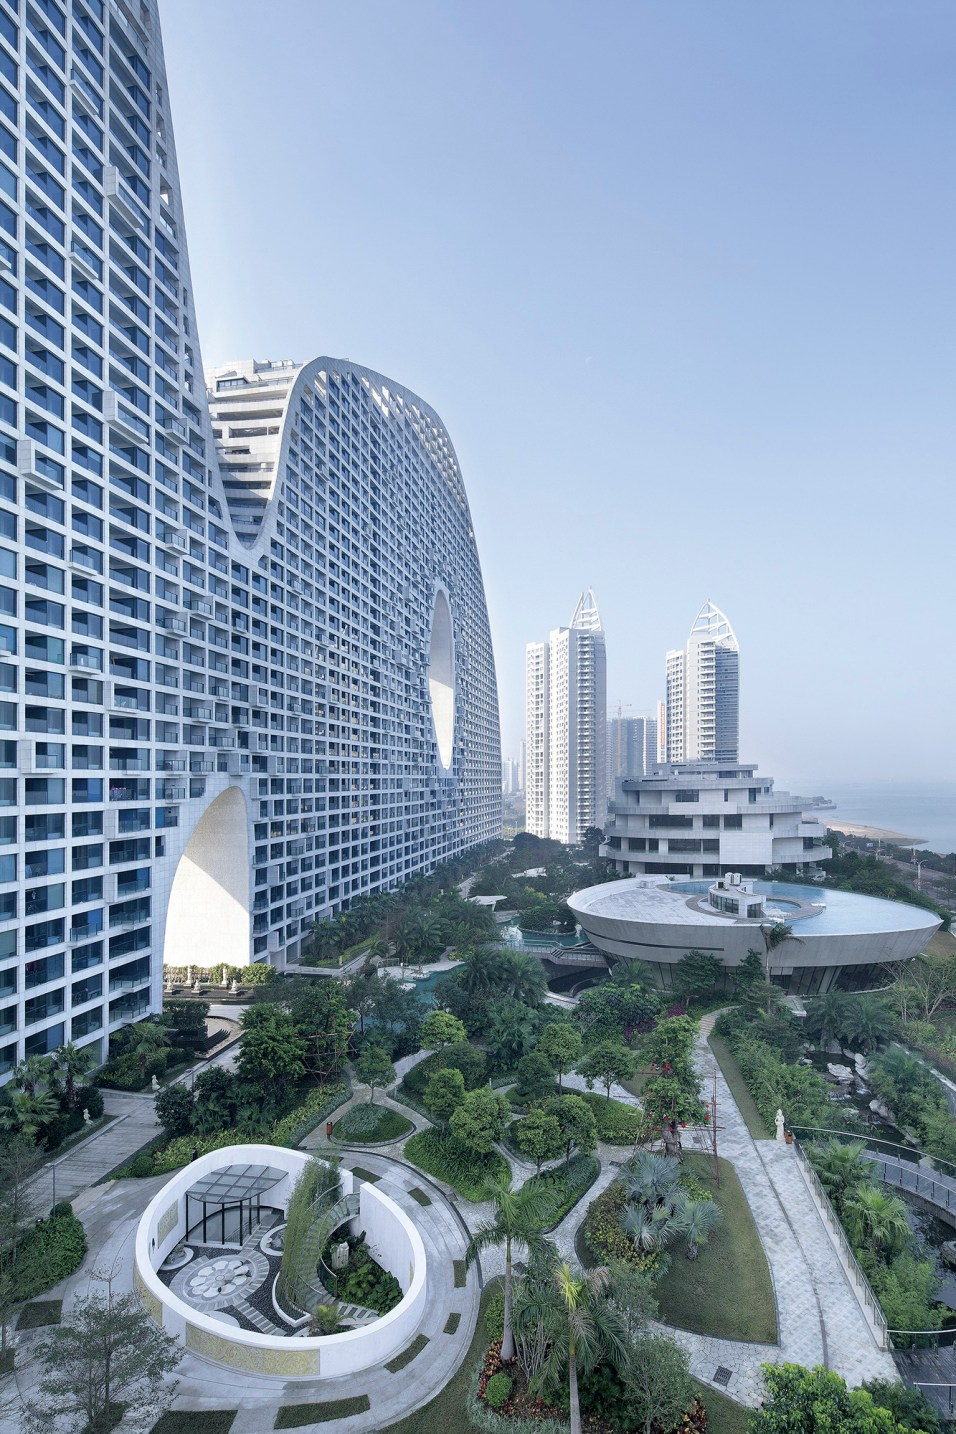 fake-hills-mad-architecture-china-apartments-residential_dezeen_2364_col_2